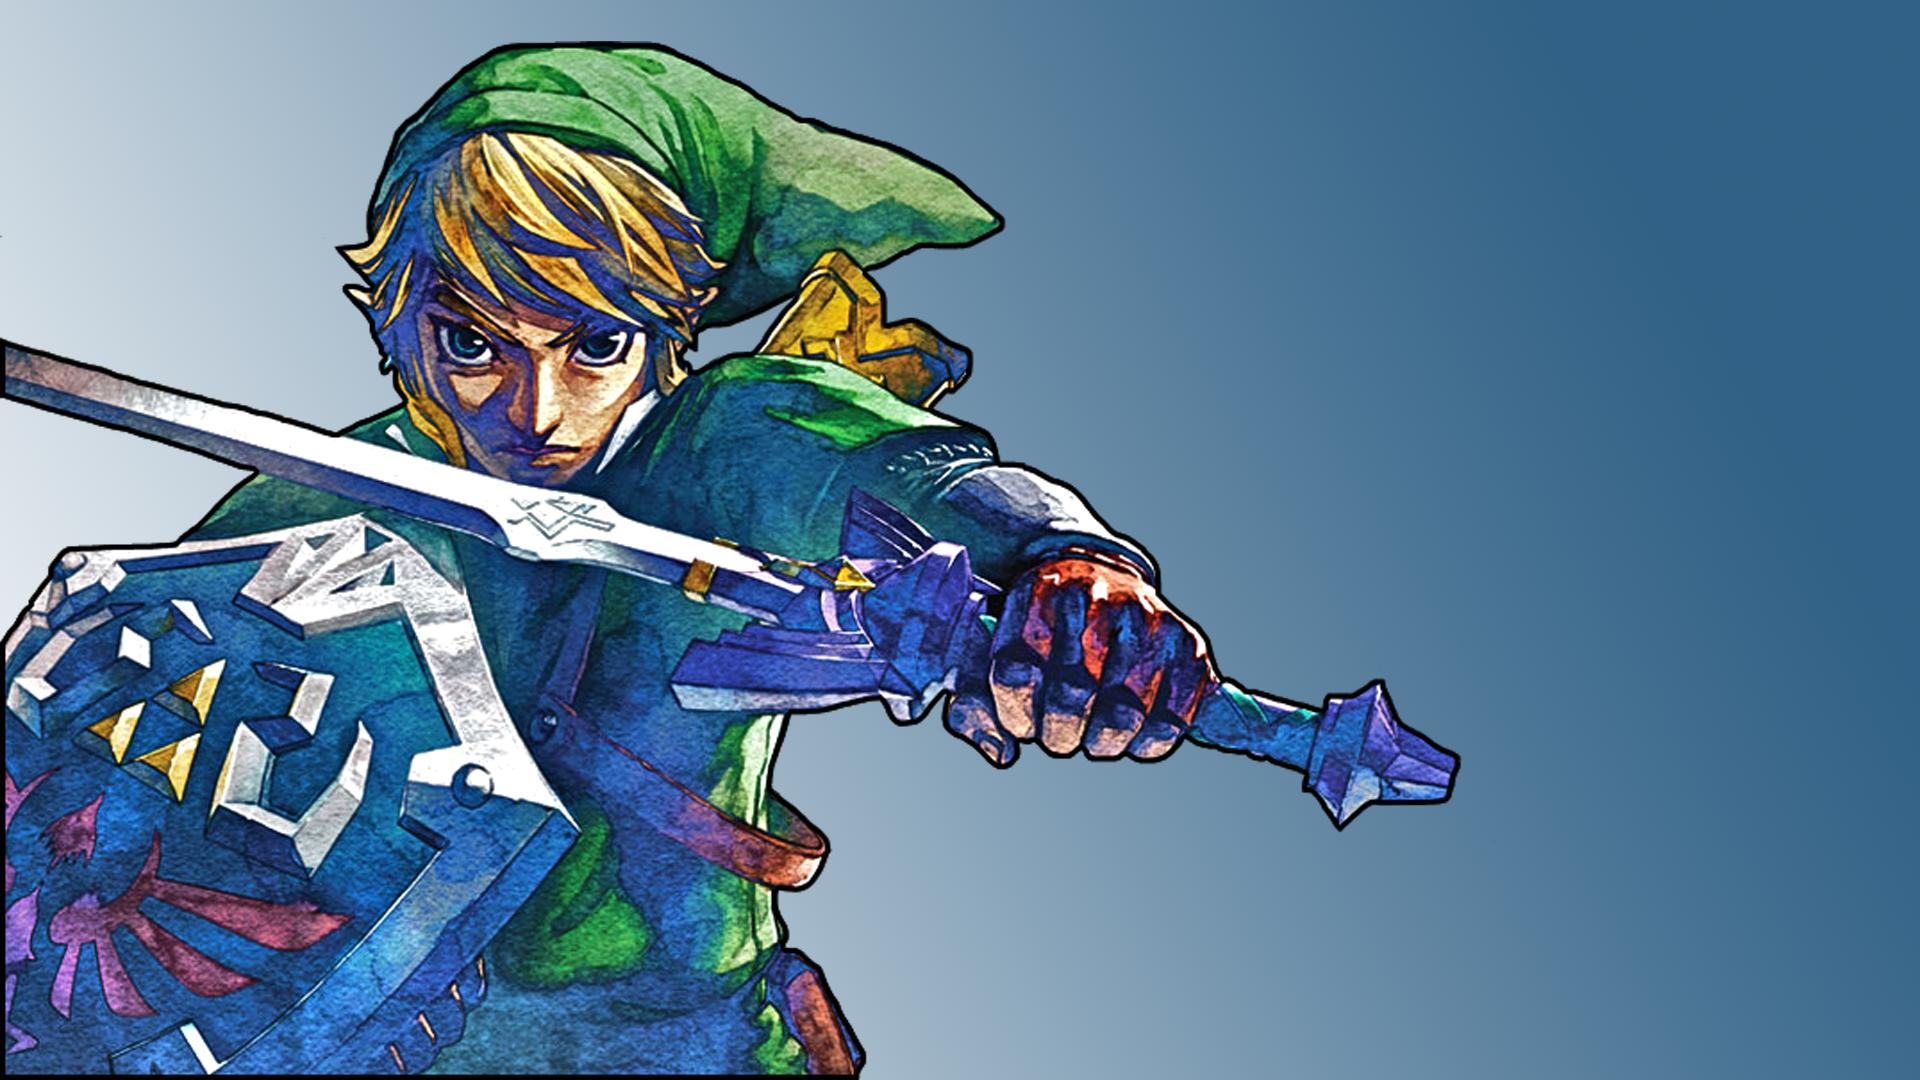 Legend Of Zelda Wallpaper Link 1920x1080 Download Hd Wallpaper Wallpapertip